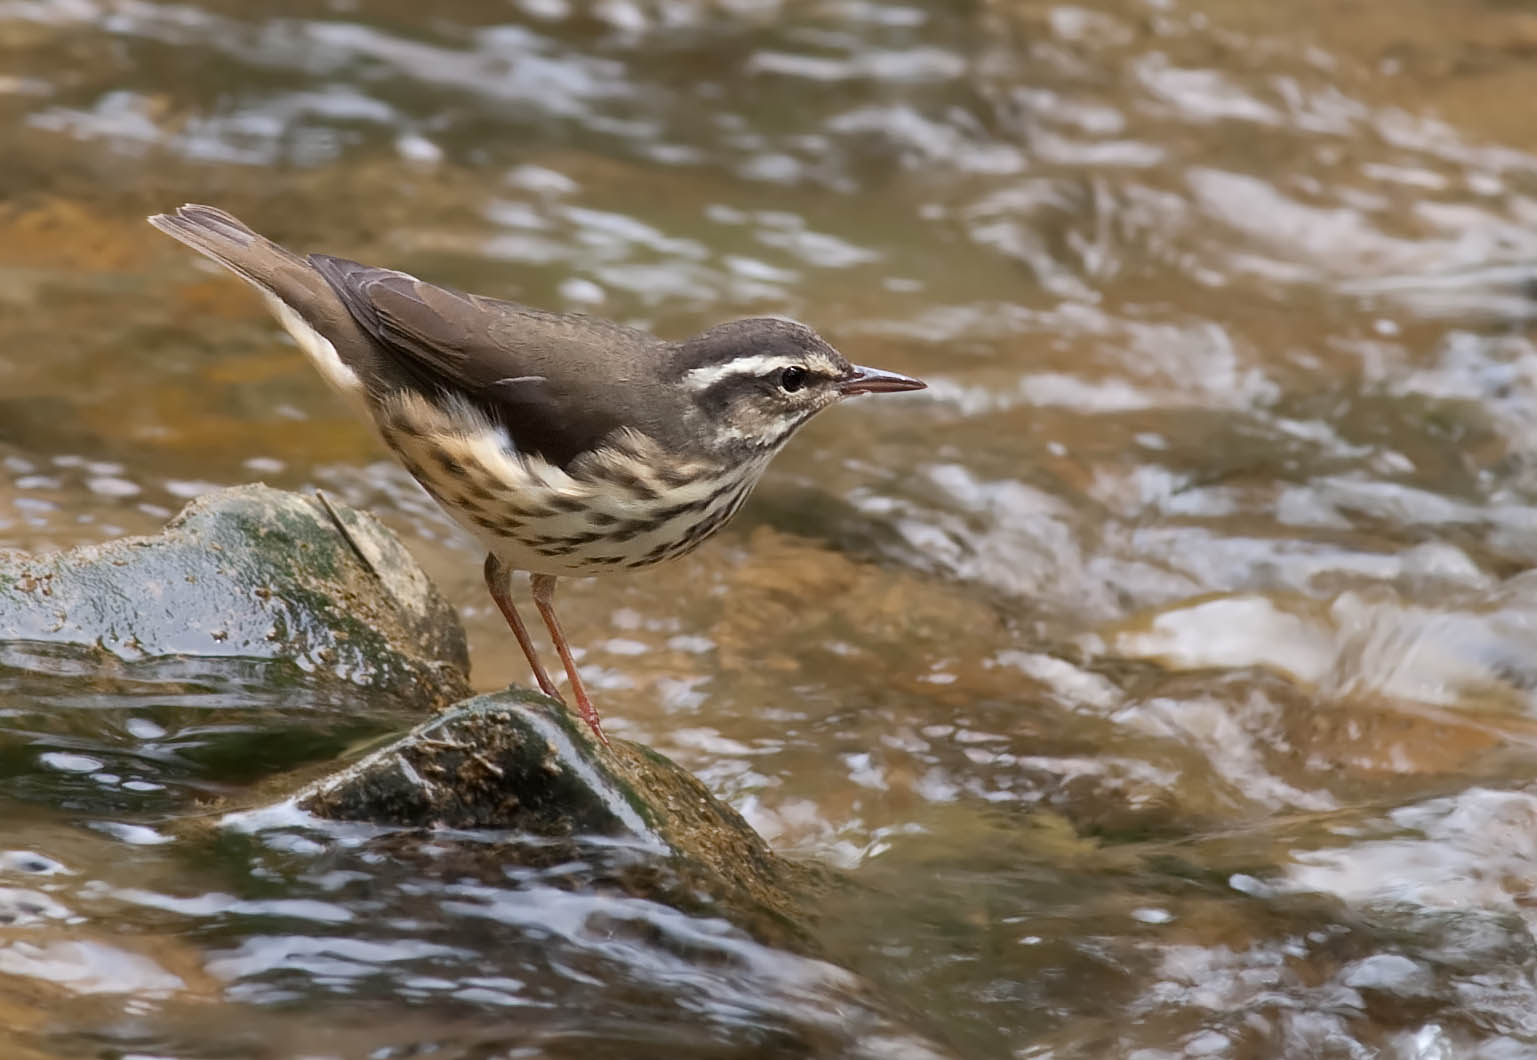 - Louisiana Waterthrush (Parkesia motacilla)Louisiana Waterthrushes live in deciduous forests near streams. Their diet consists of insects, crustaceans, mollusks, and some small fish. Their average wingspan is 9.4 in. and they weigh 0.7-0.8 oz. Louisiana Waterthrushes sing three clear notes that are followed by a short jumble. They are protected on the US Migratory Bird list.Photo Credits: Kelly Colgan Azar